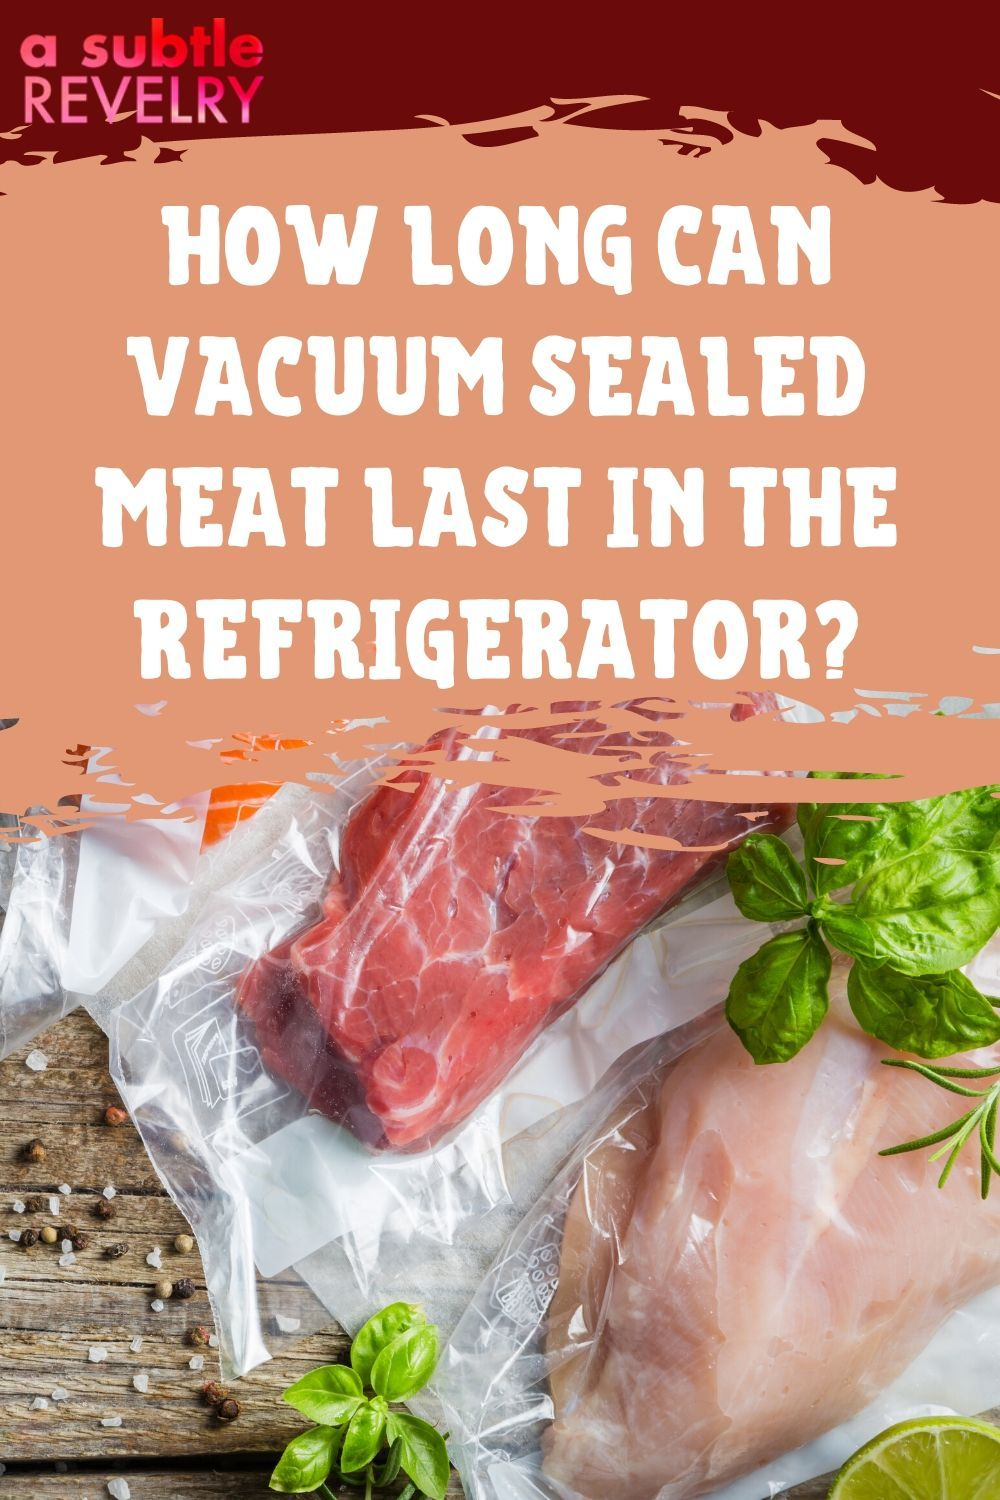 How Long Can Vacuum Sealed Meat Last in the Refrigerator